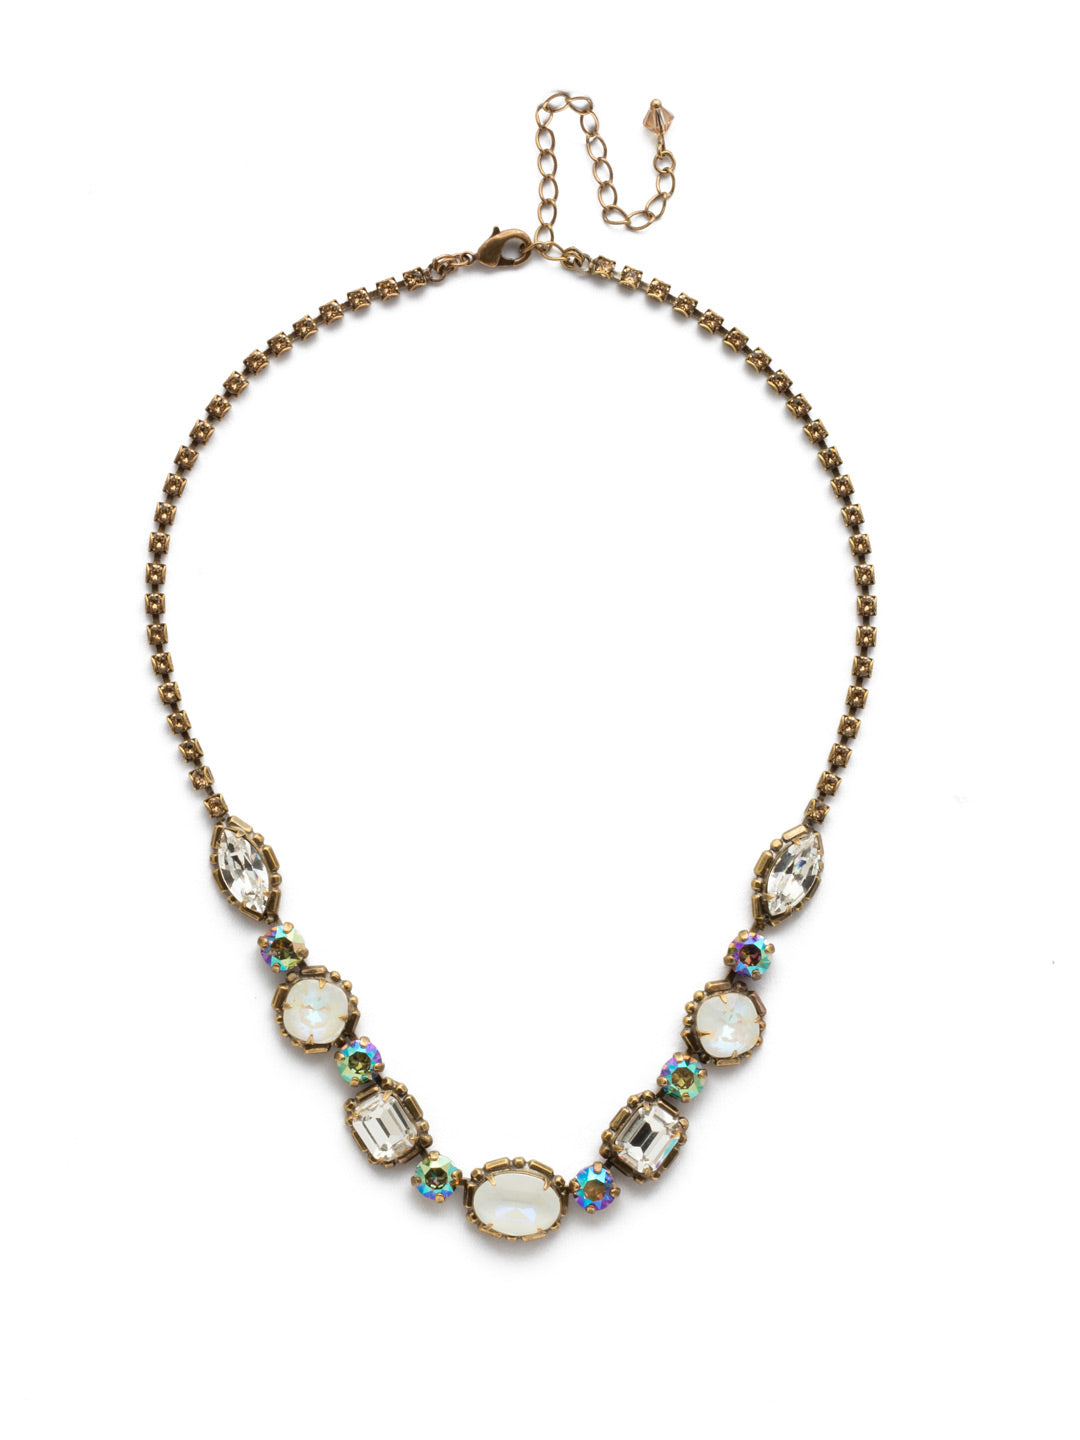 Cardoon Tennis Necklace - NDX7AGROB